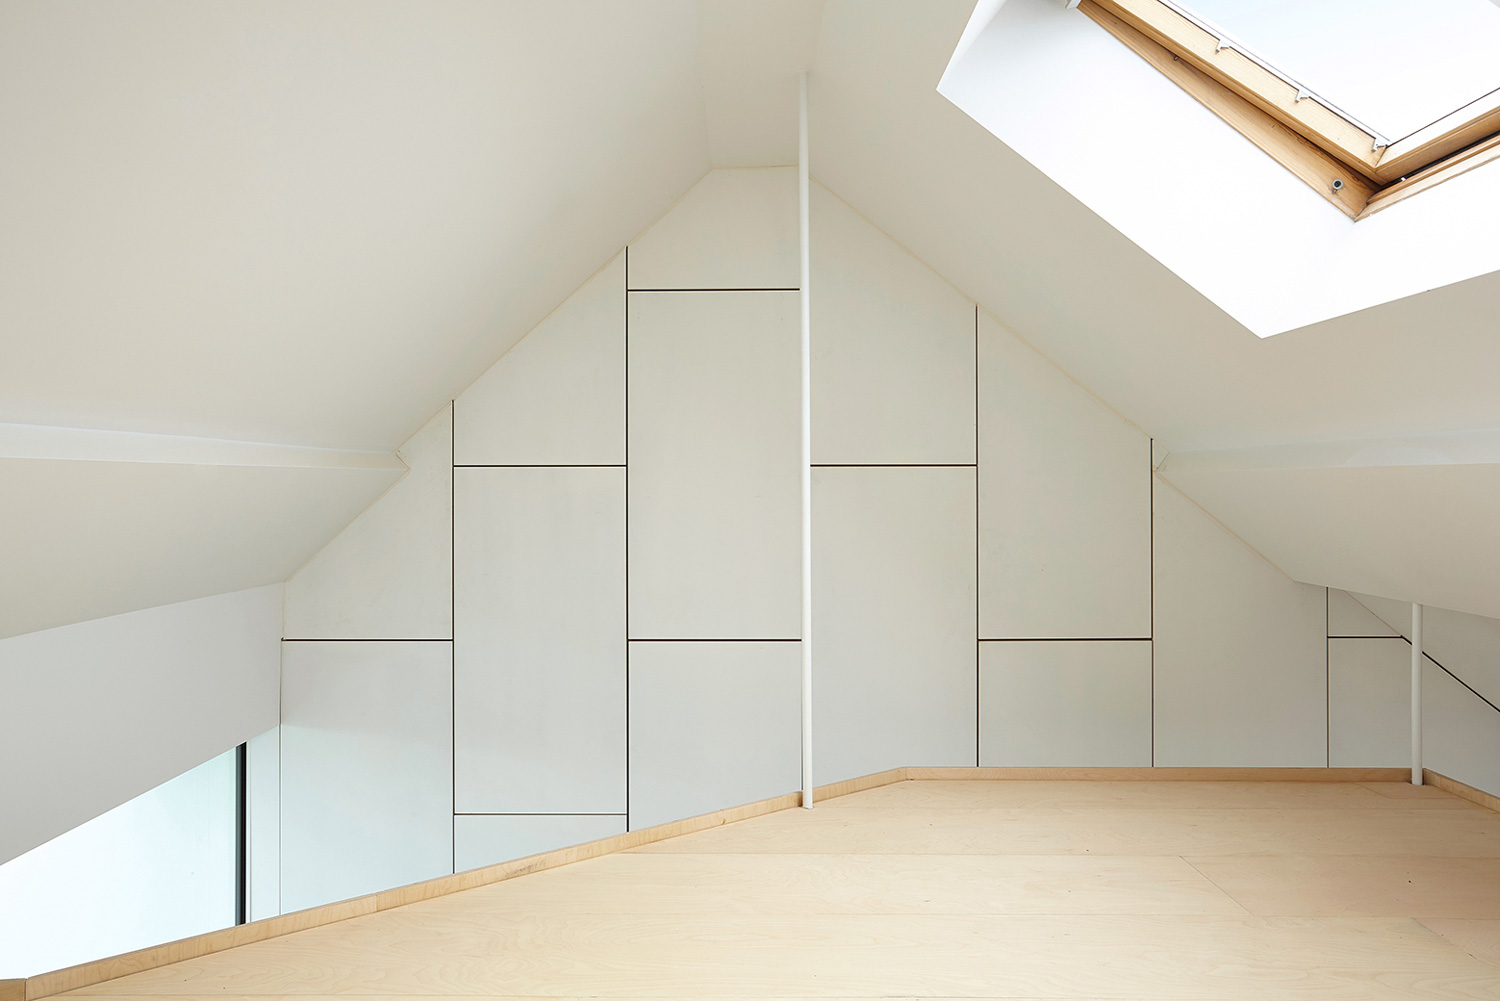 Terraced House Reno by Edouard Brunet + François Martens | Yellowtrace